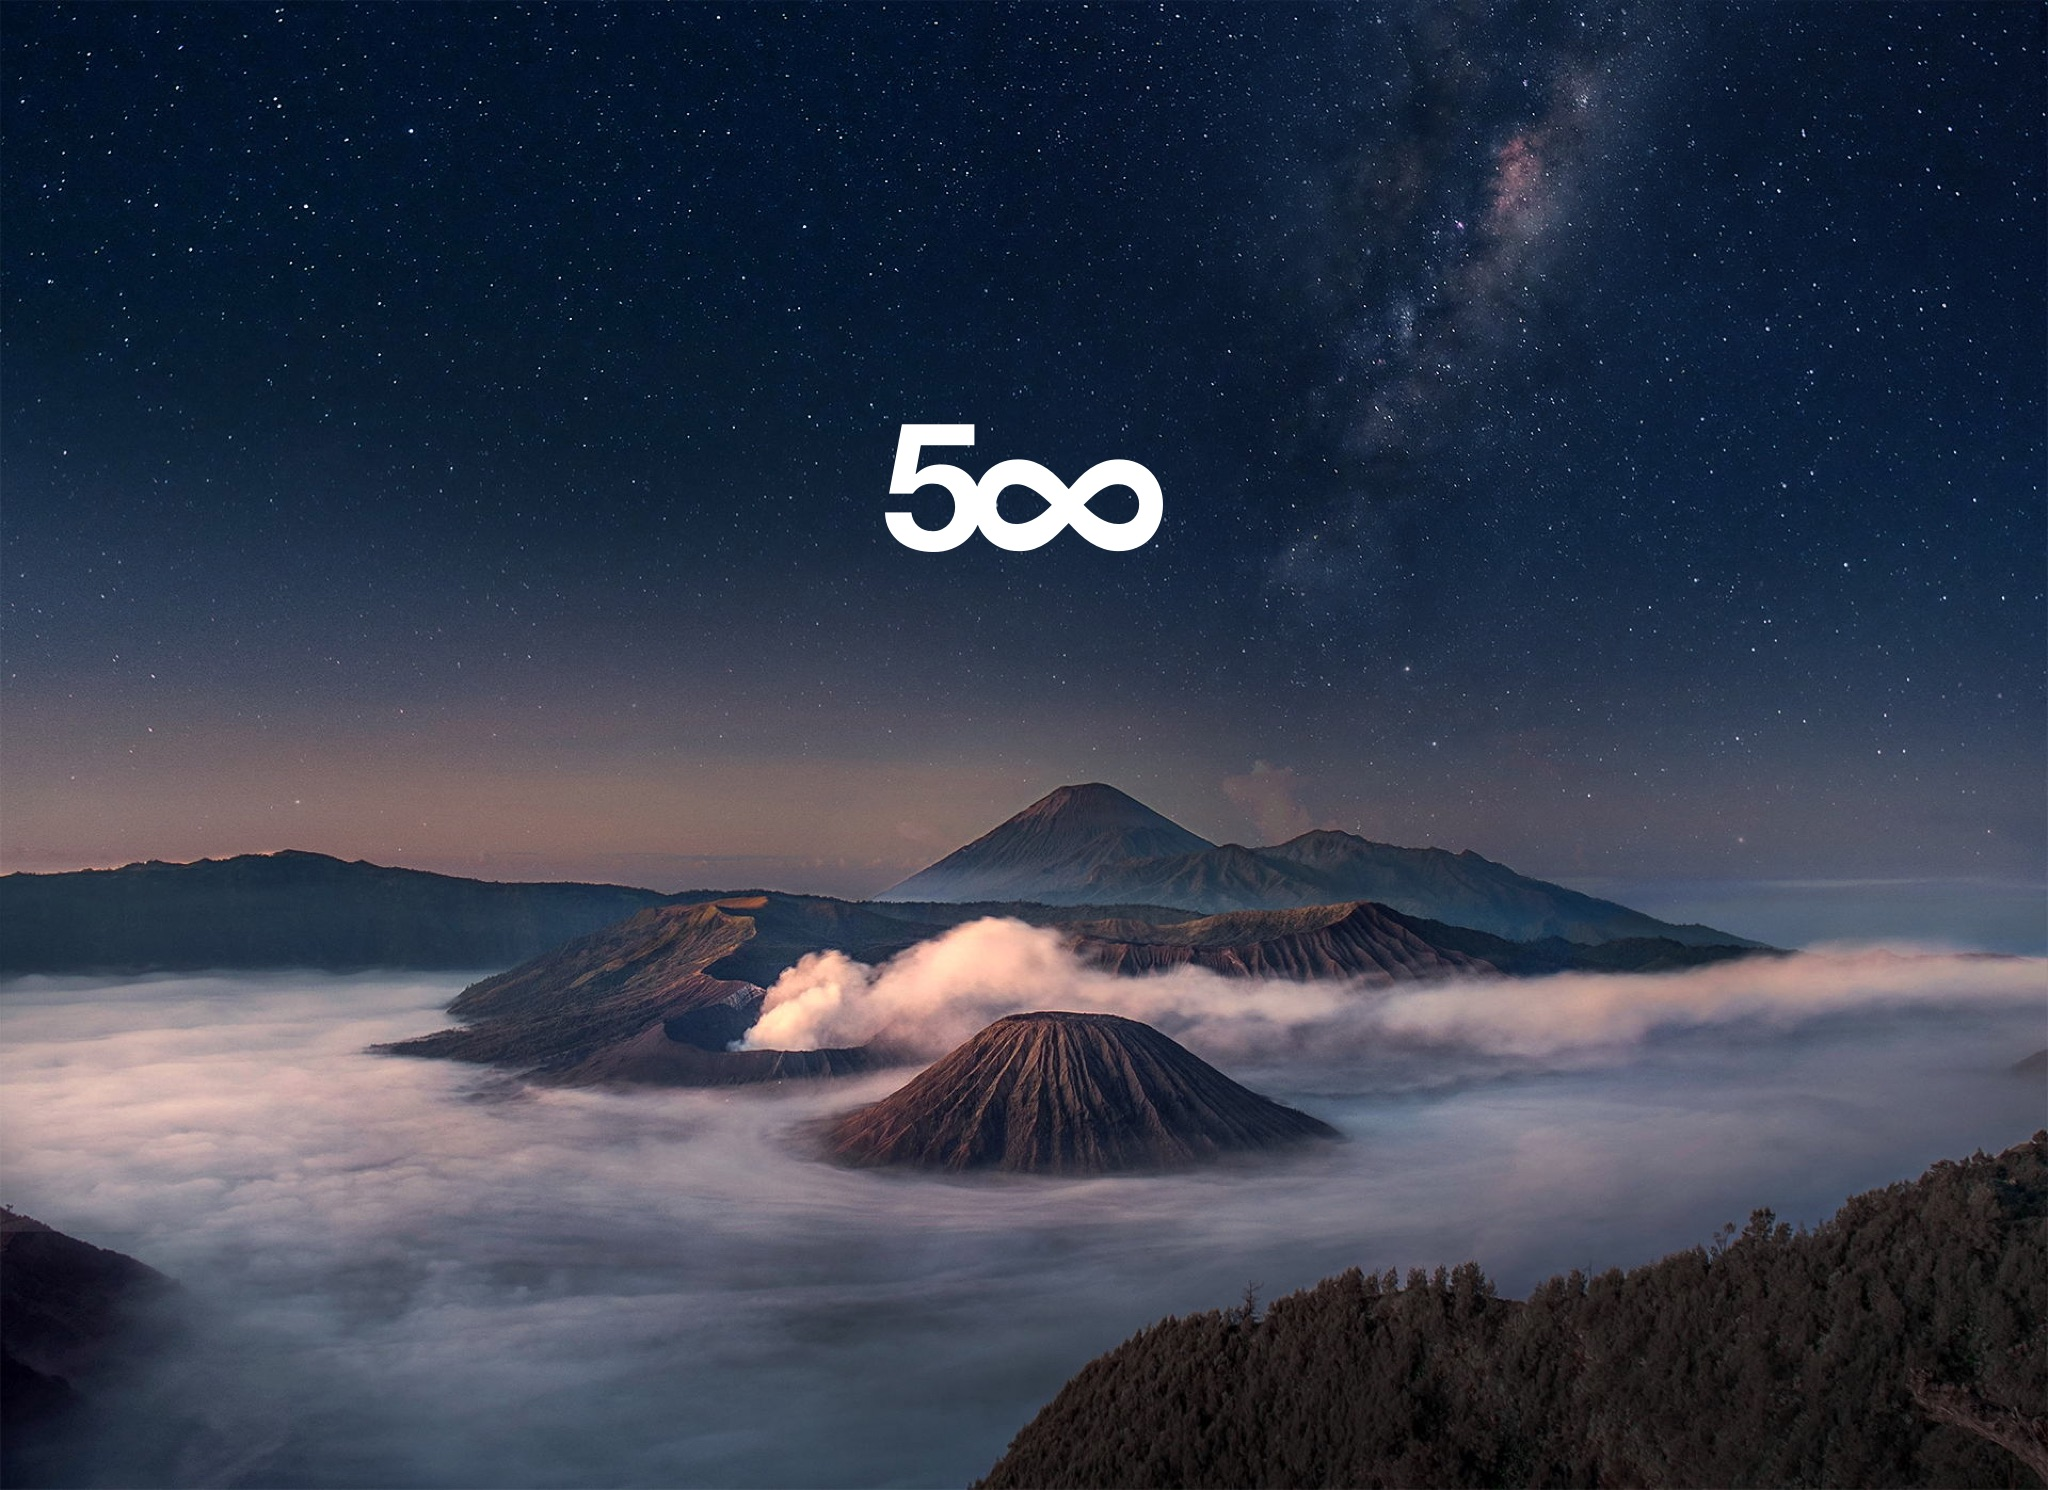 Introducing the New 500px iOS App with a Camera and Adobe Image Editor Baked Right In